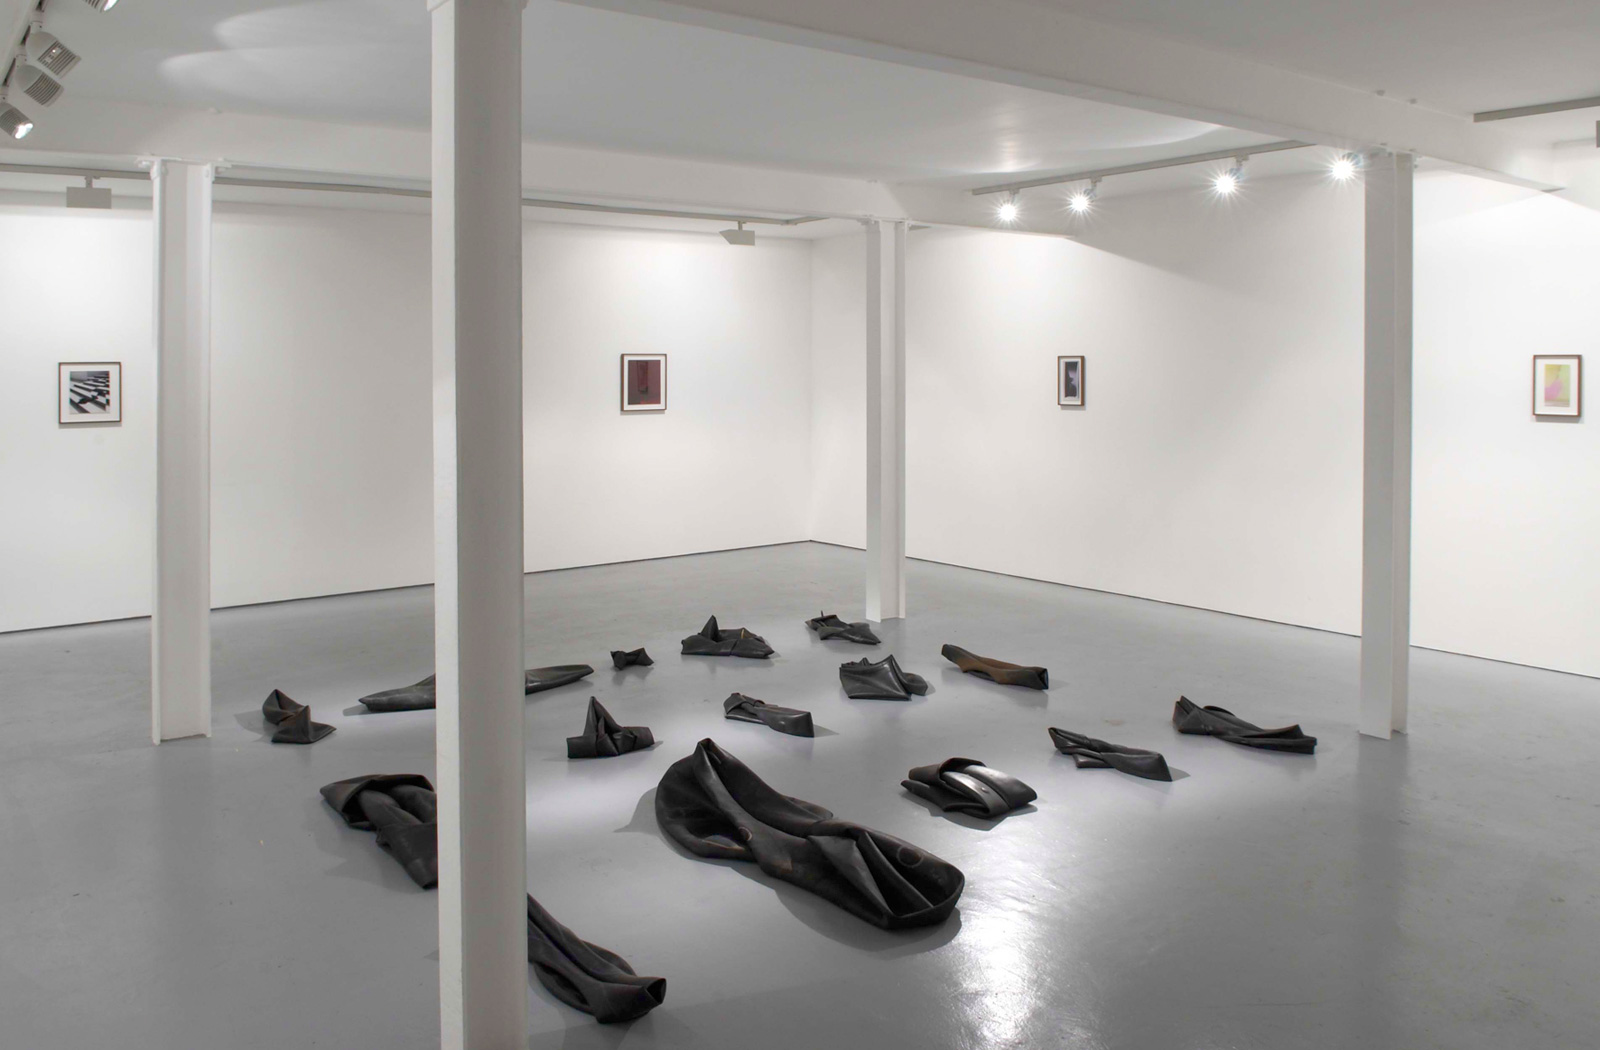 Installation view. In Apertura , Martin Soto Climent, Raphael Danke, Jennifer West